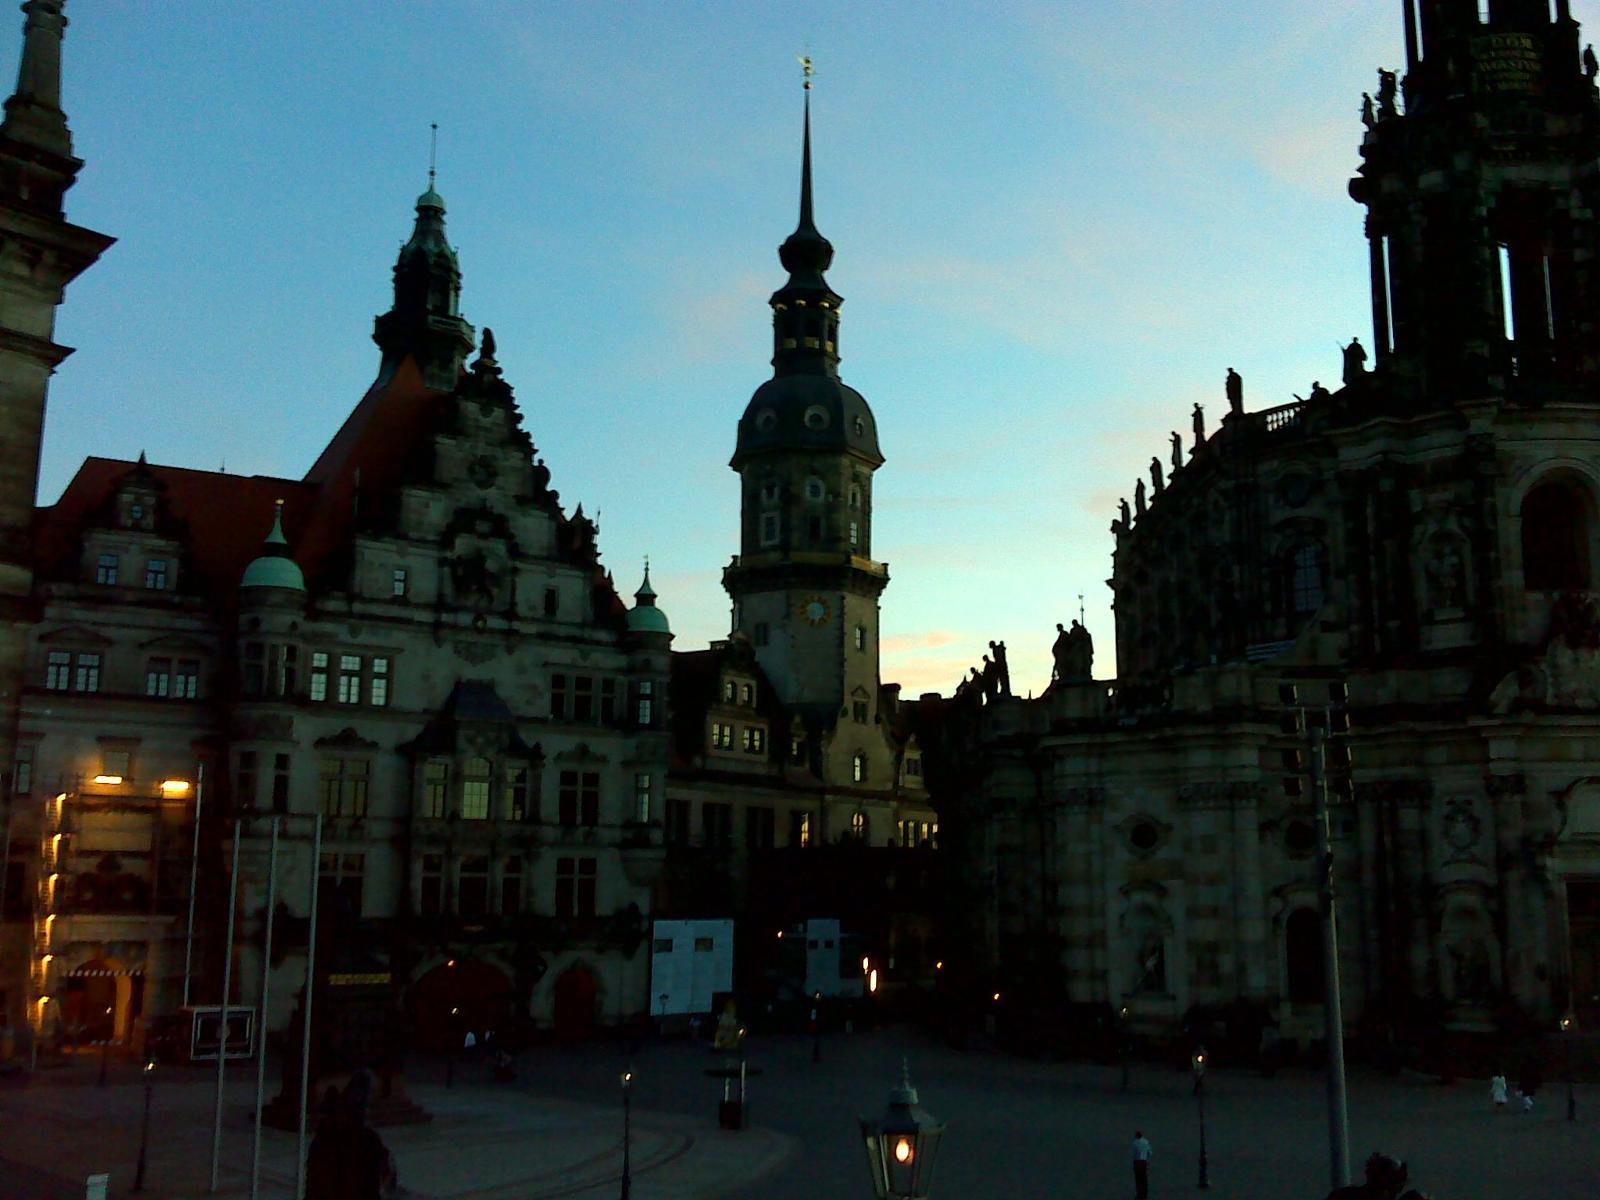 Wikiloc Photo Of 2017 06 01 Dresden Frauenkirche Kreuzkirche